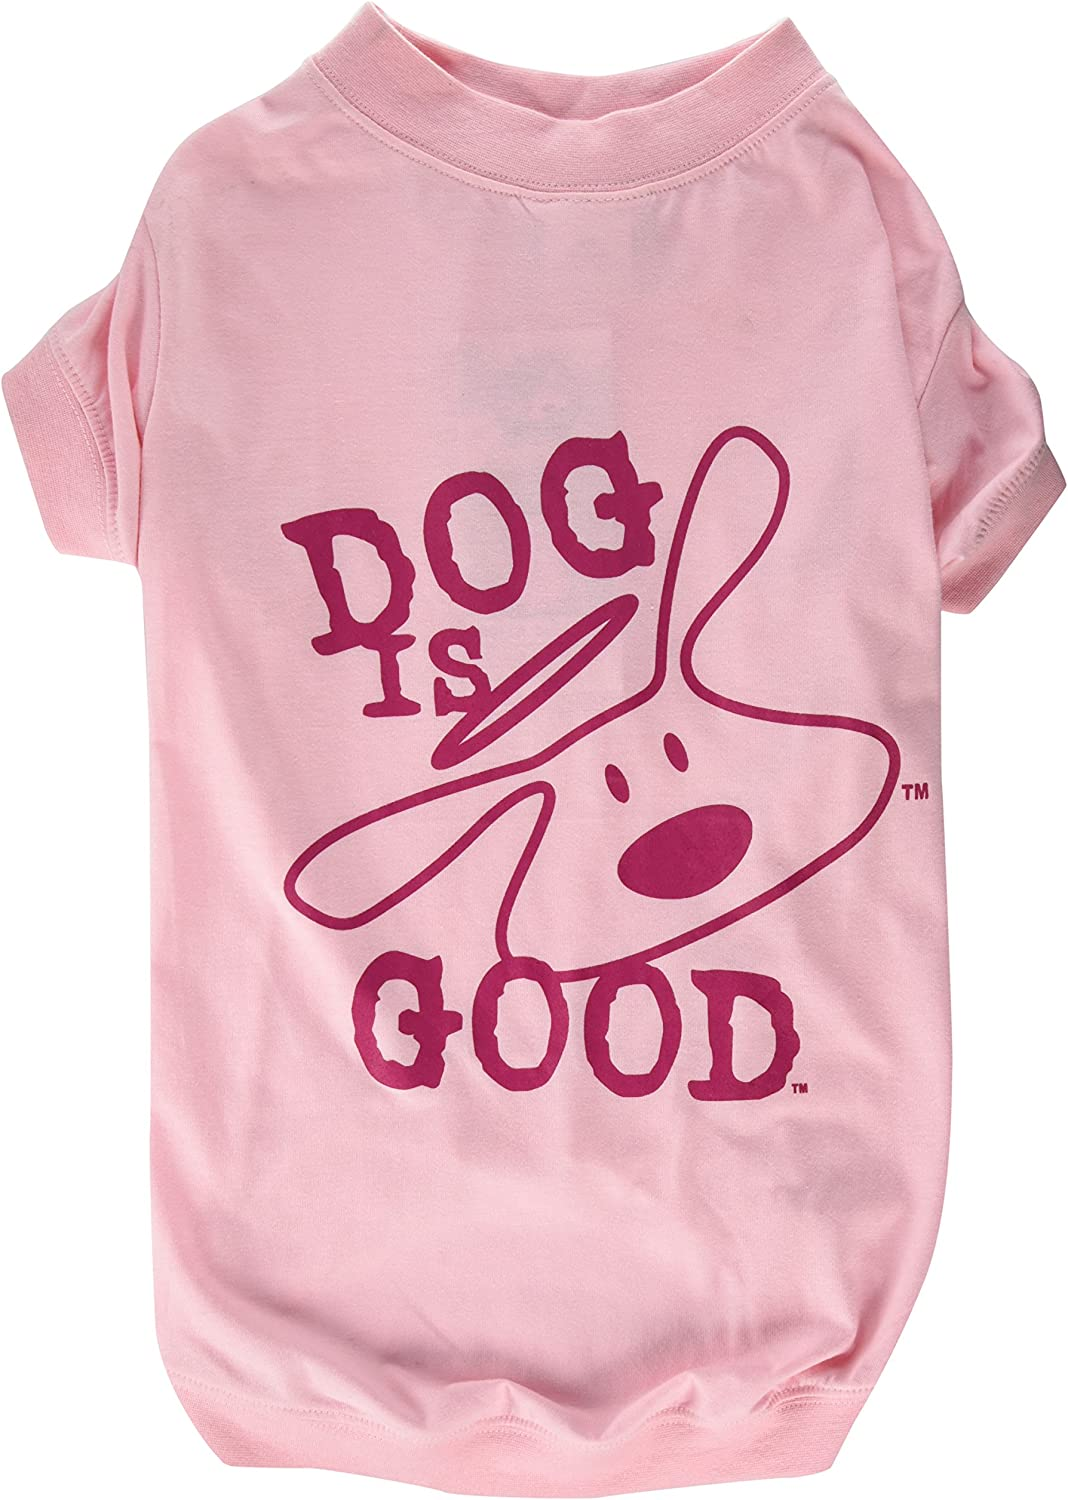 DogIsGood Solid Bolo Tee for Dogs, Large, pink Shadow